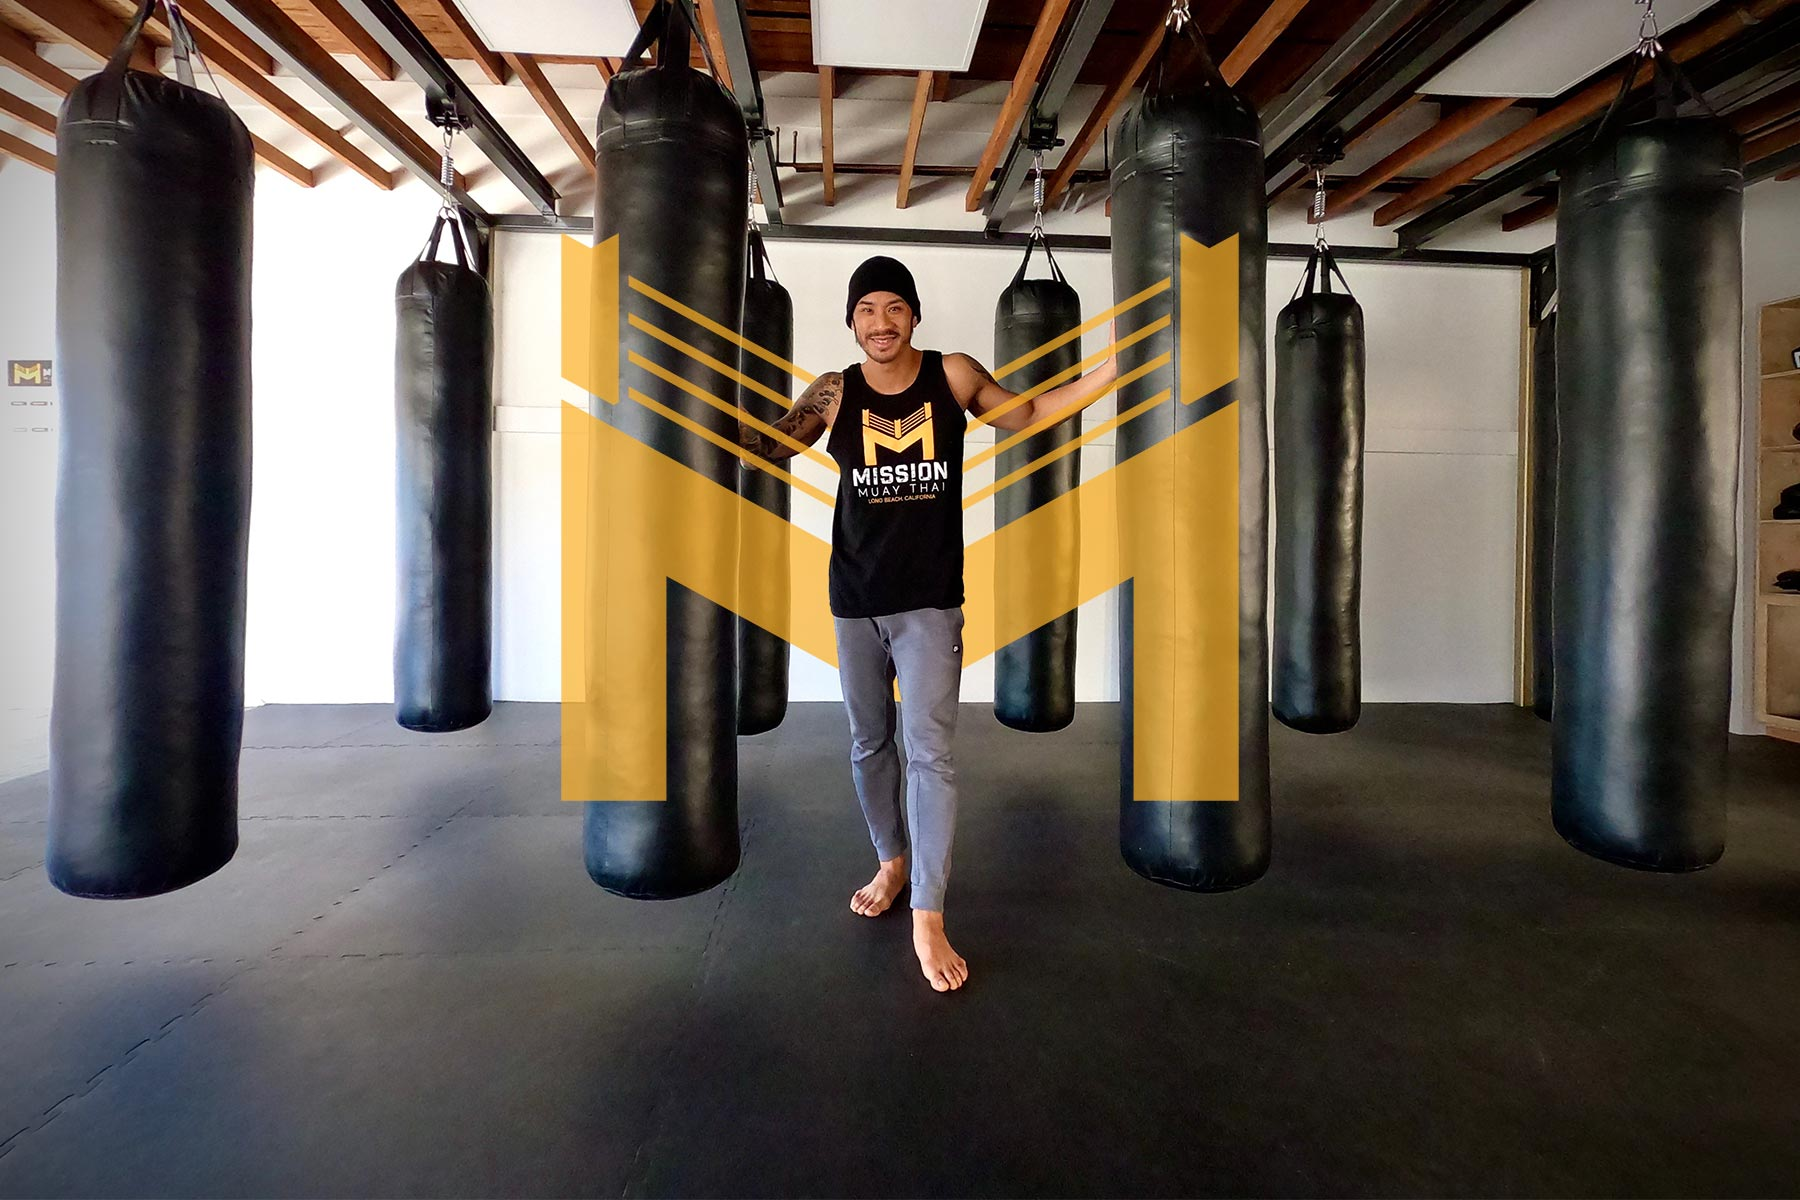 Mission Muay Thai gym with heavy bags